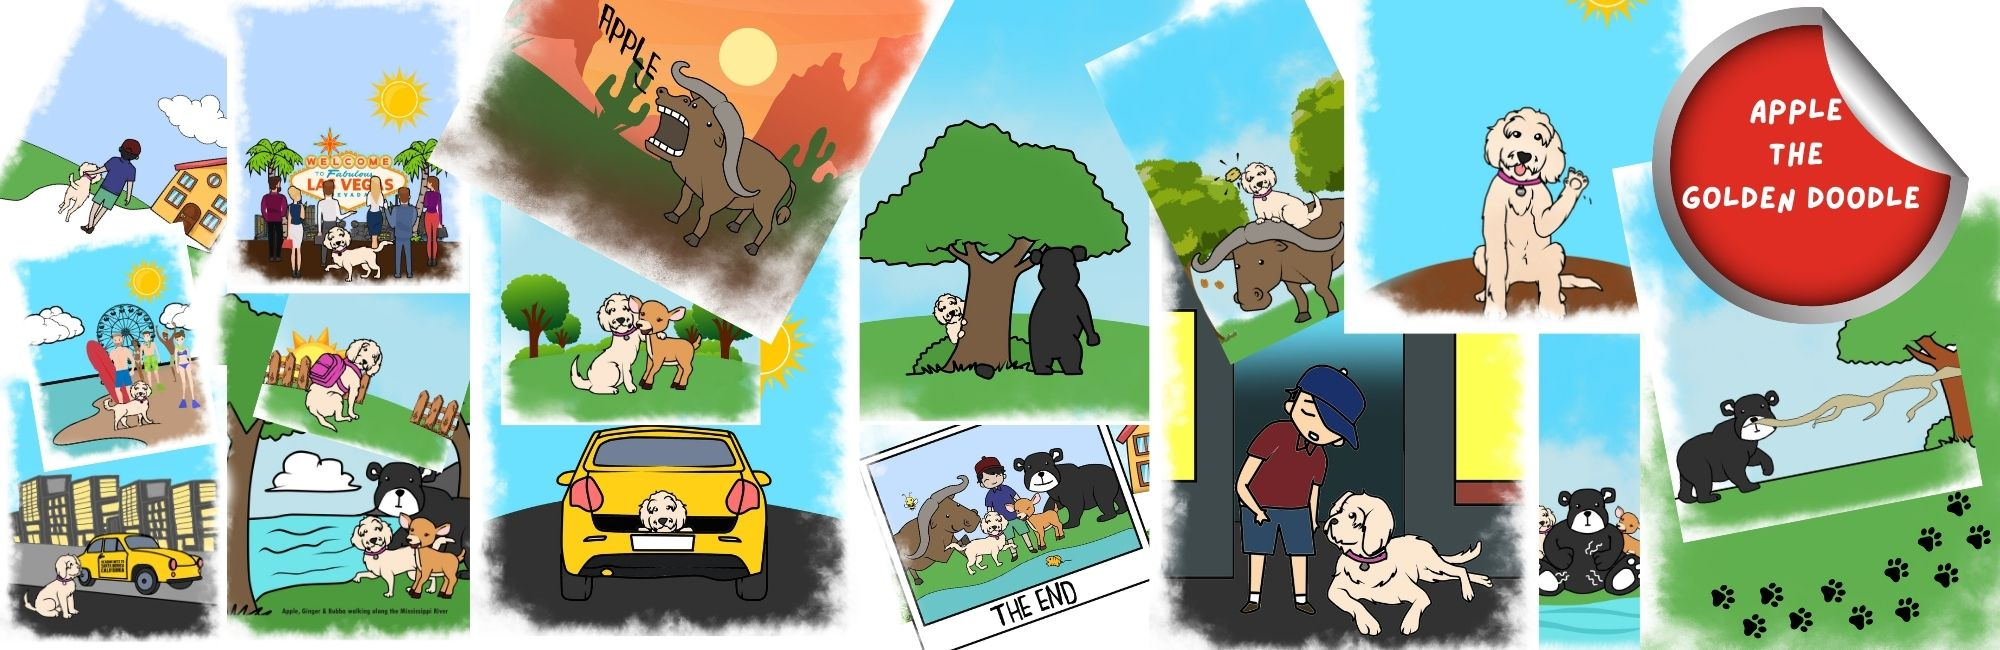 picture of the In search of a family full color version banner